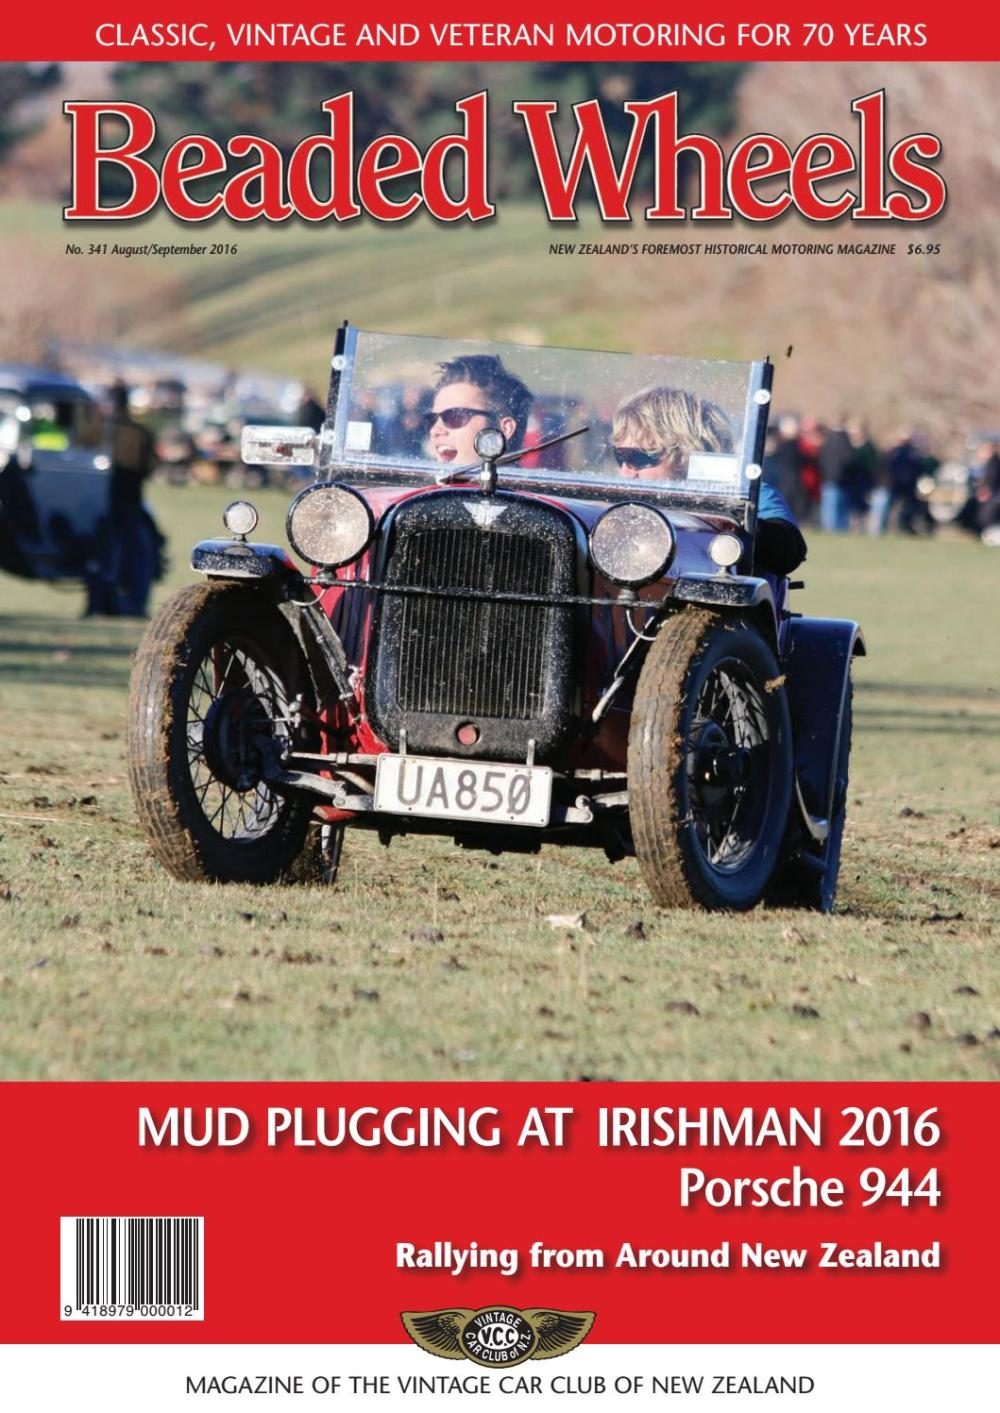 medium resolution of beaded wheels august september 2016 by vintage car club of new zealand issuu